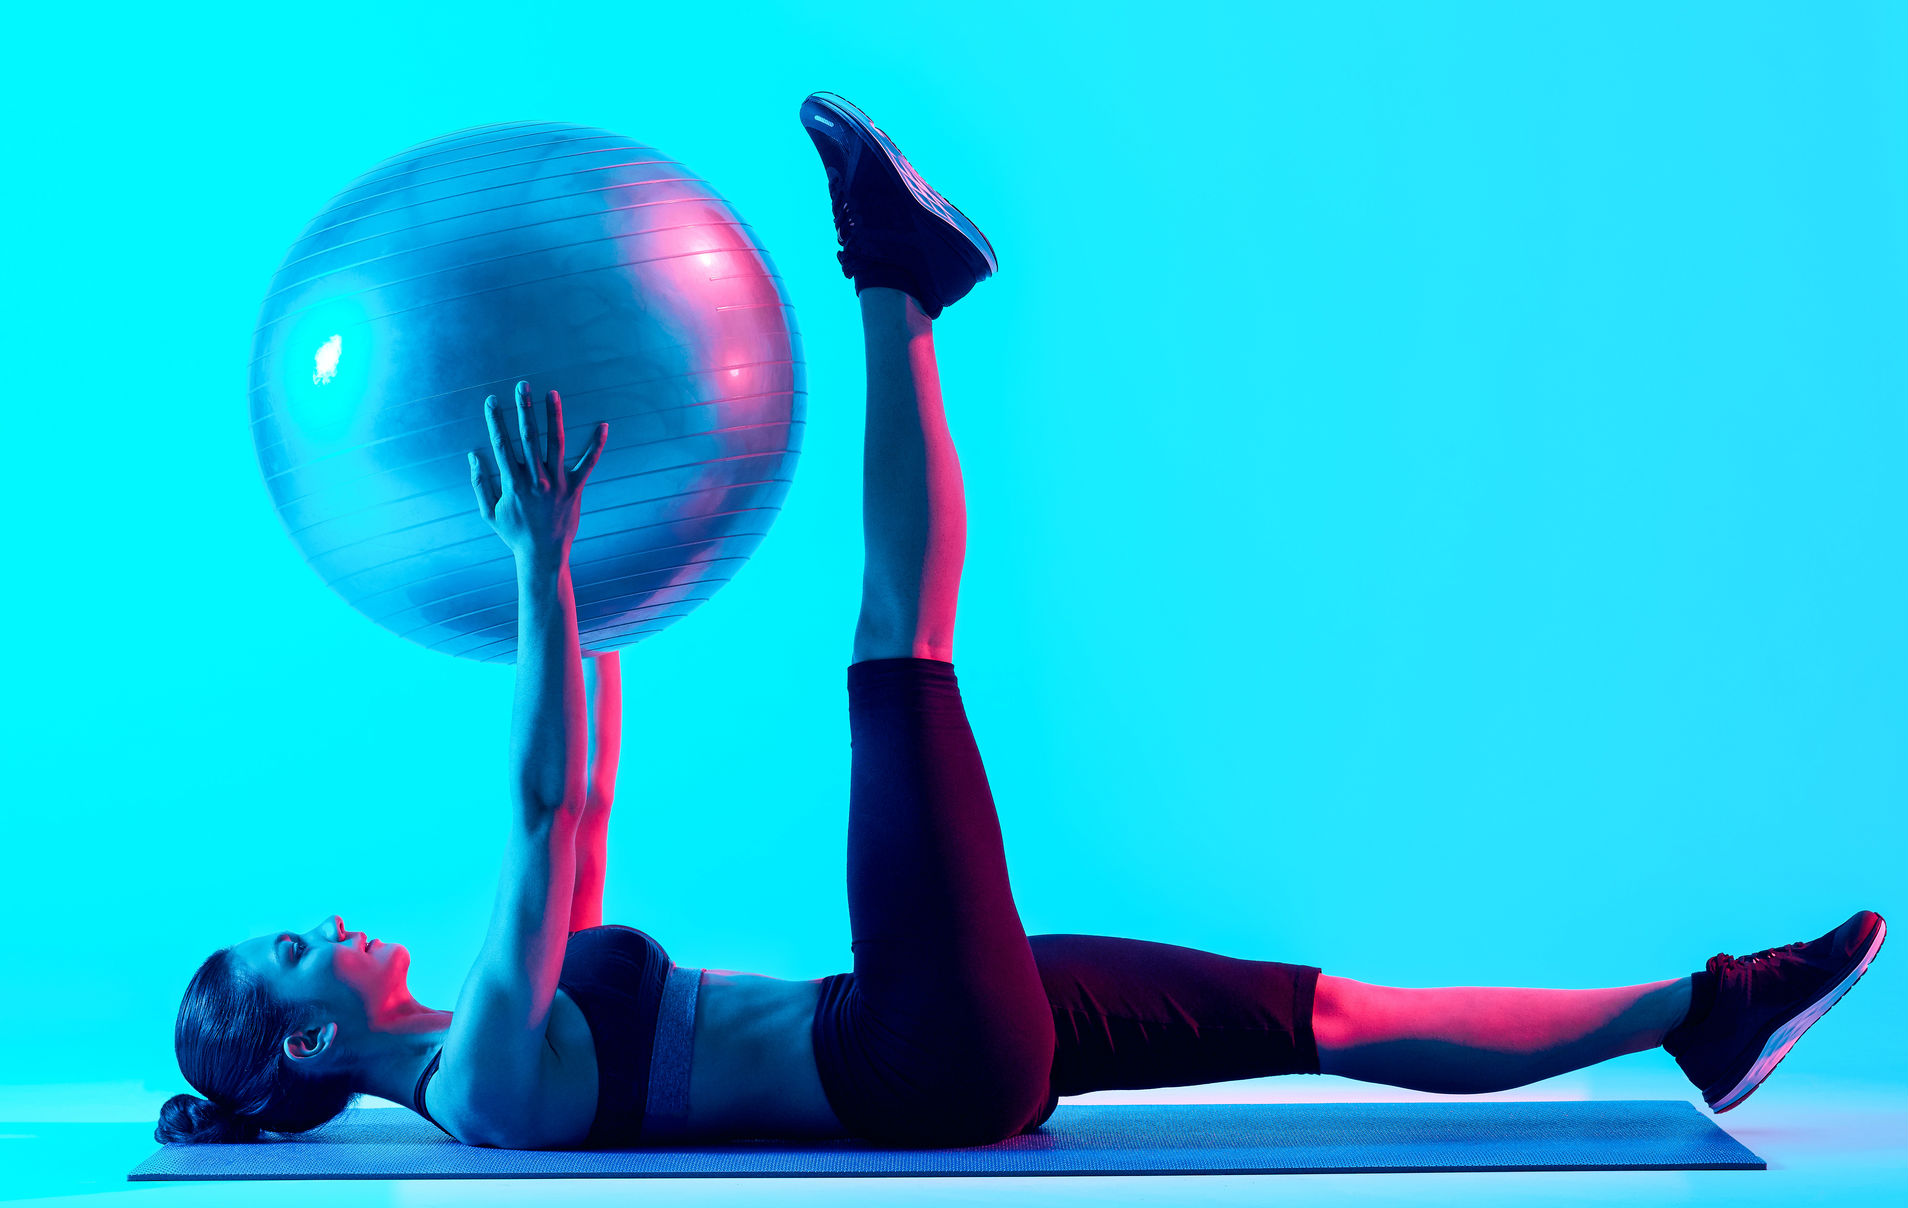 Exercise ball workouts: how to use your Swiss ball effectively